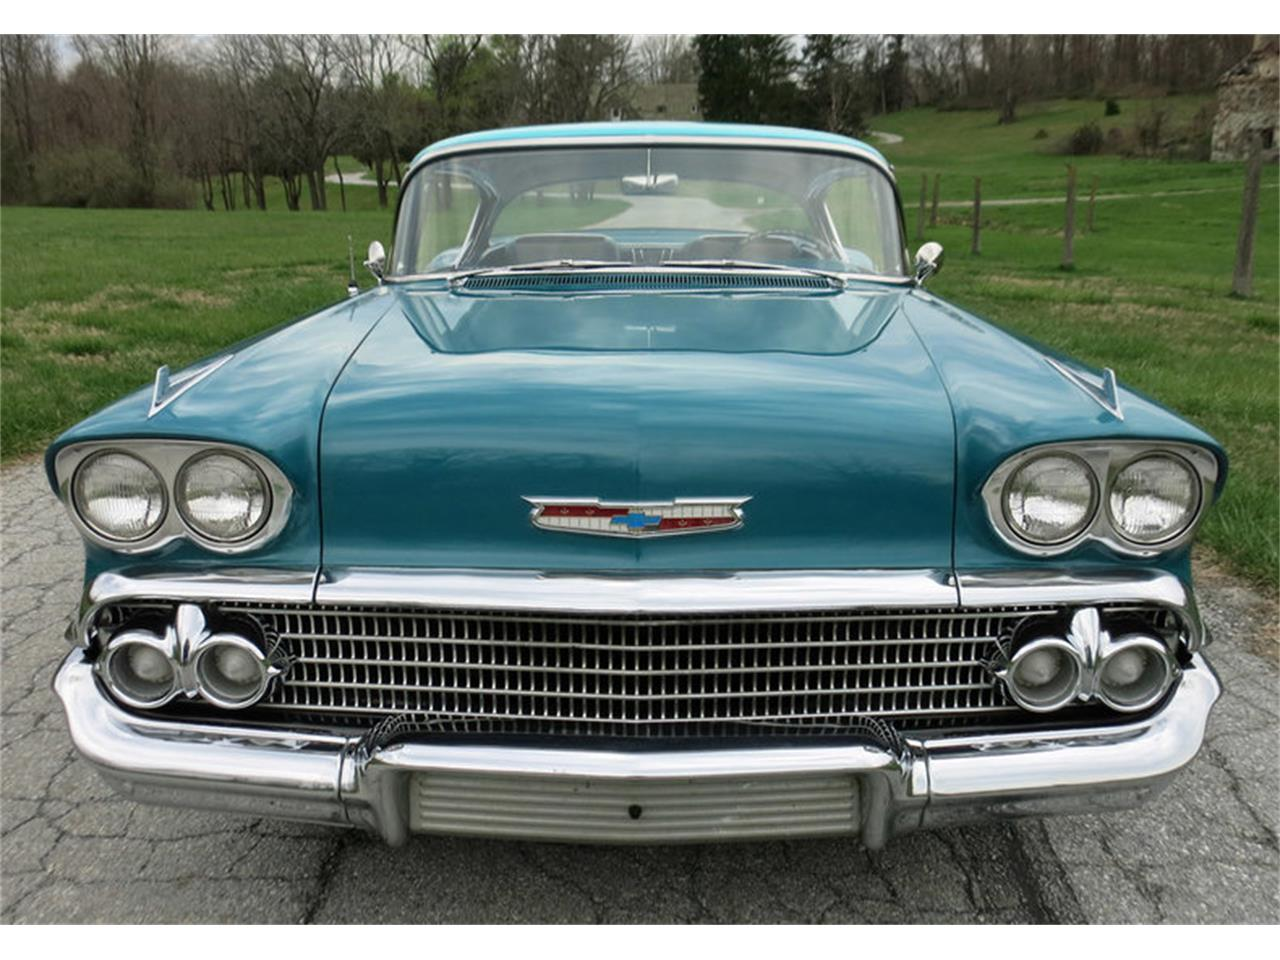 Large Picture of Classic '58 Impala located in West Chester Pennsylvania - $45,000.00 - LRM8